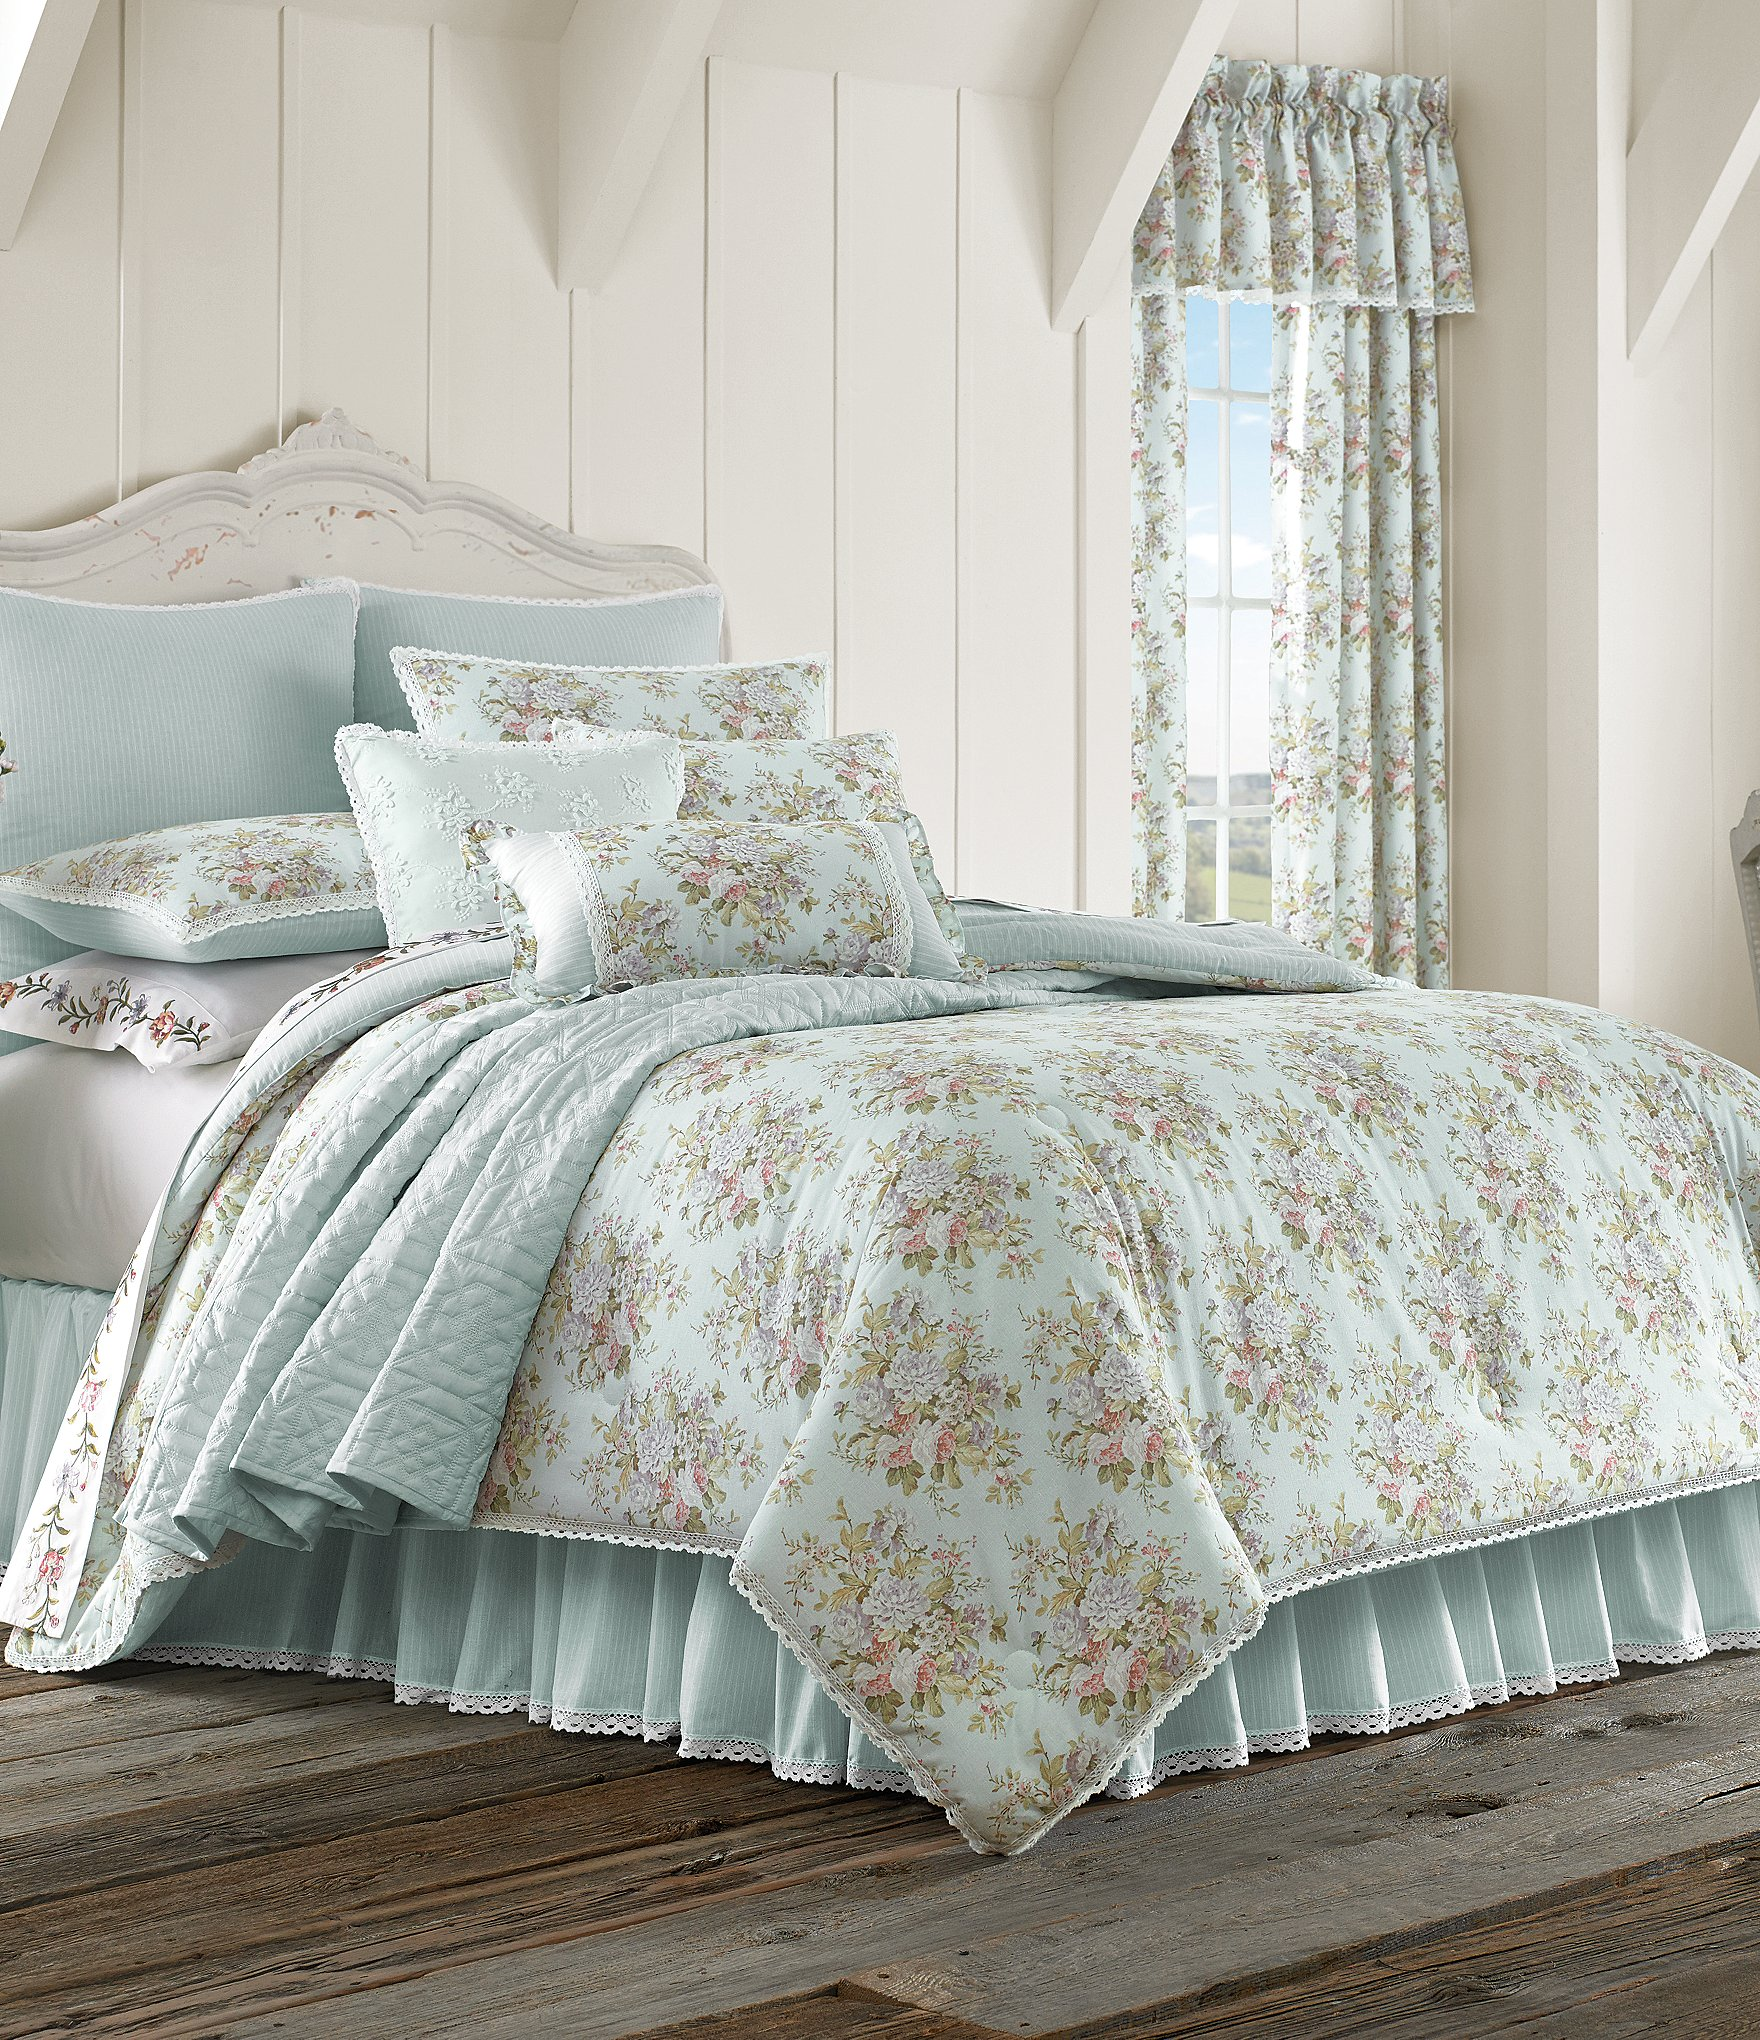 Billabong bedding sets - Billabong Bedding Sets 39